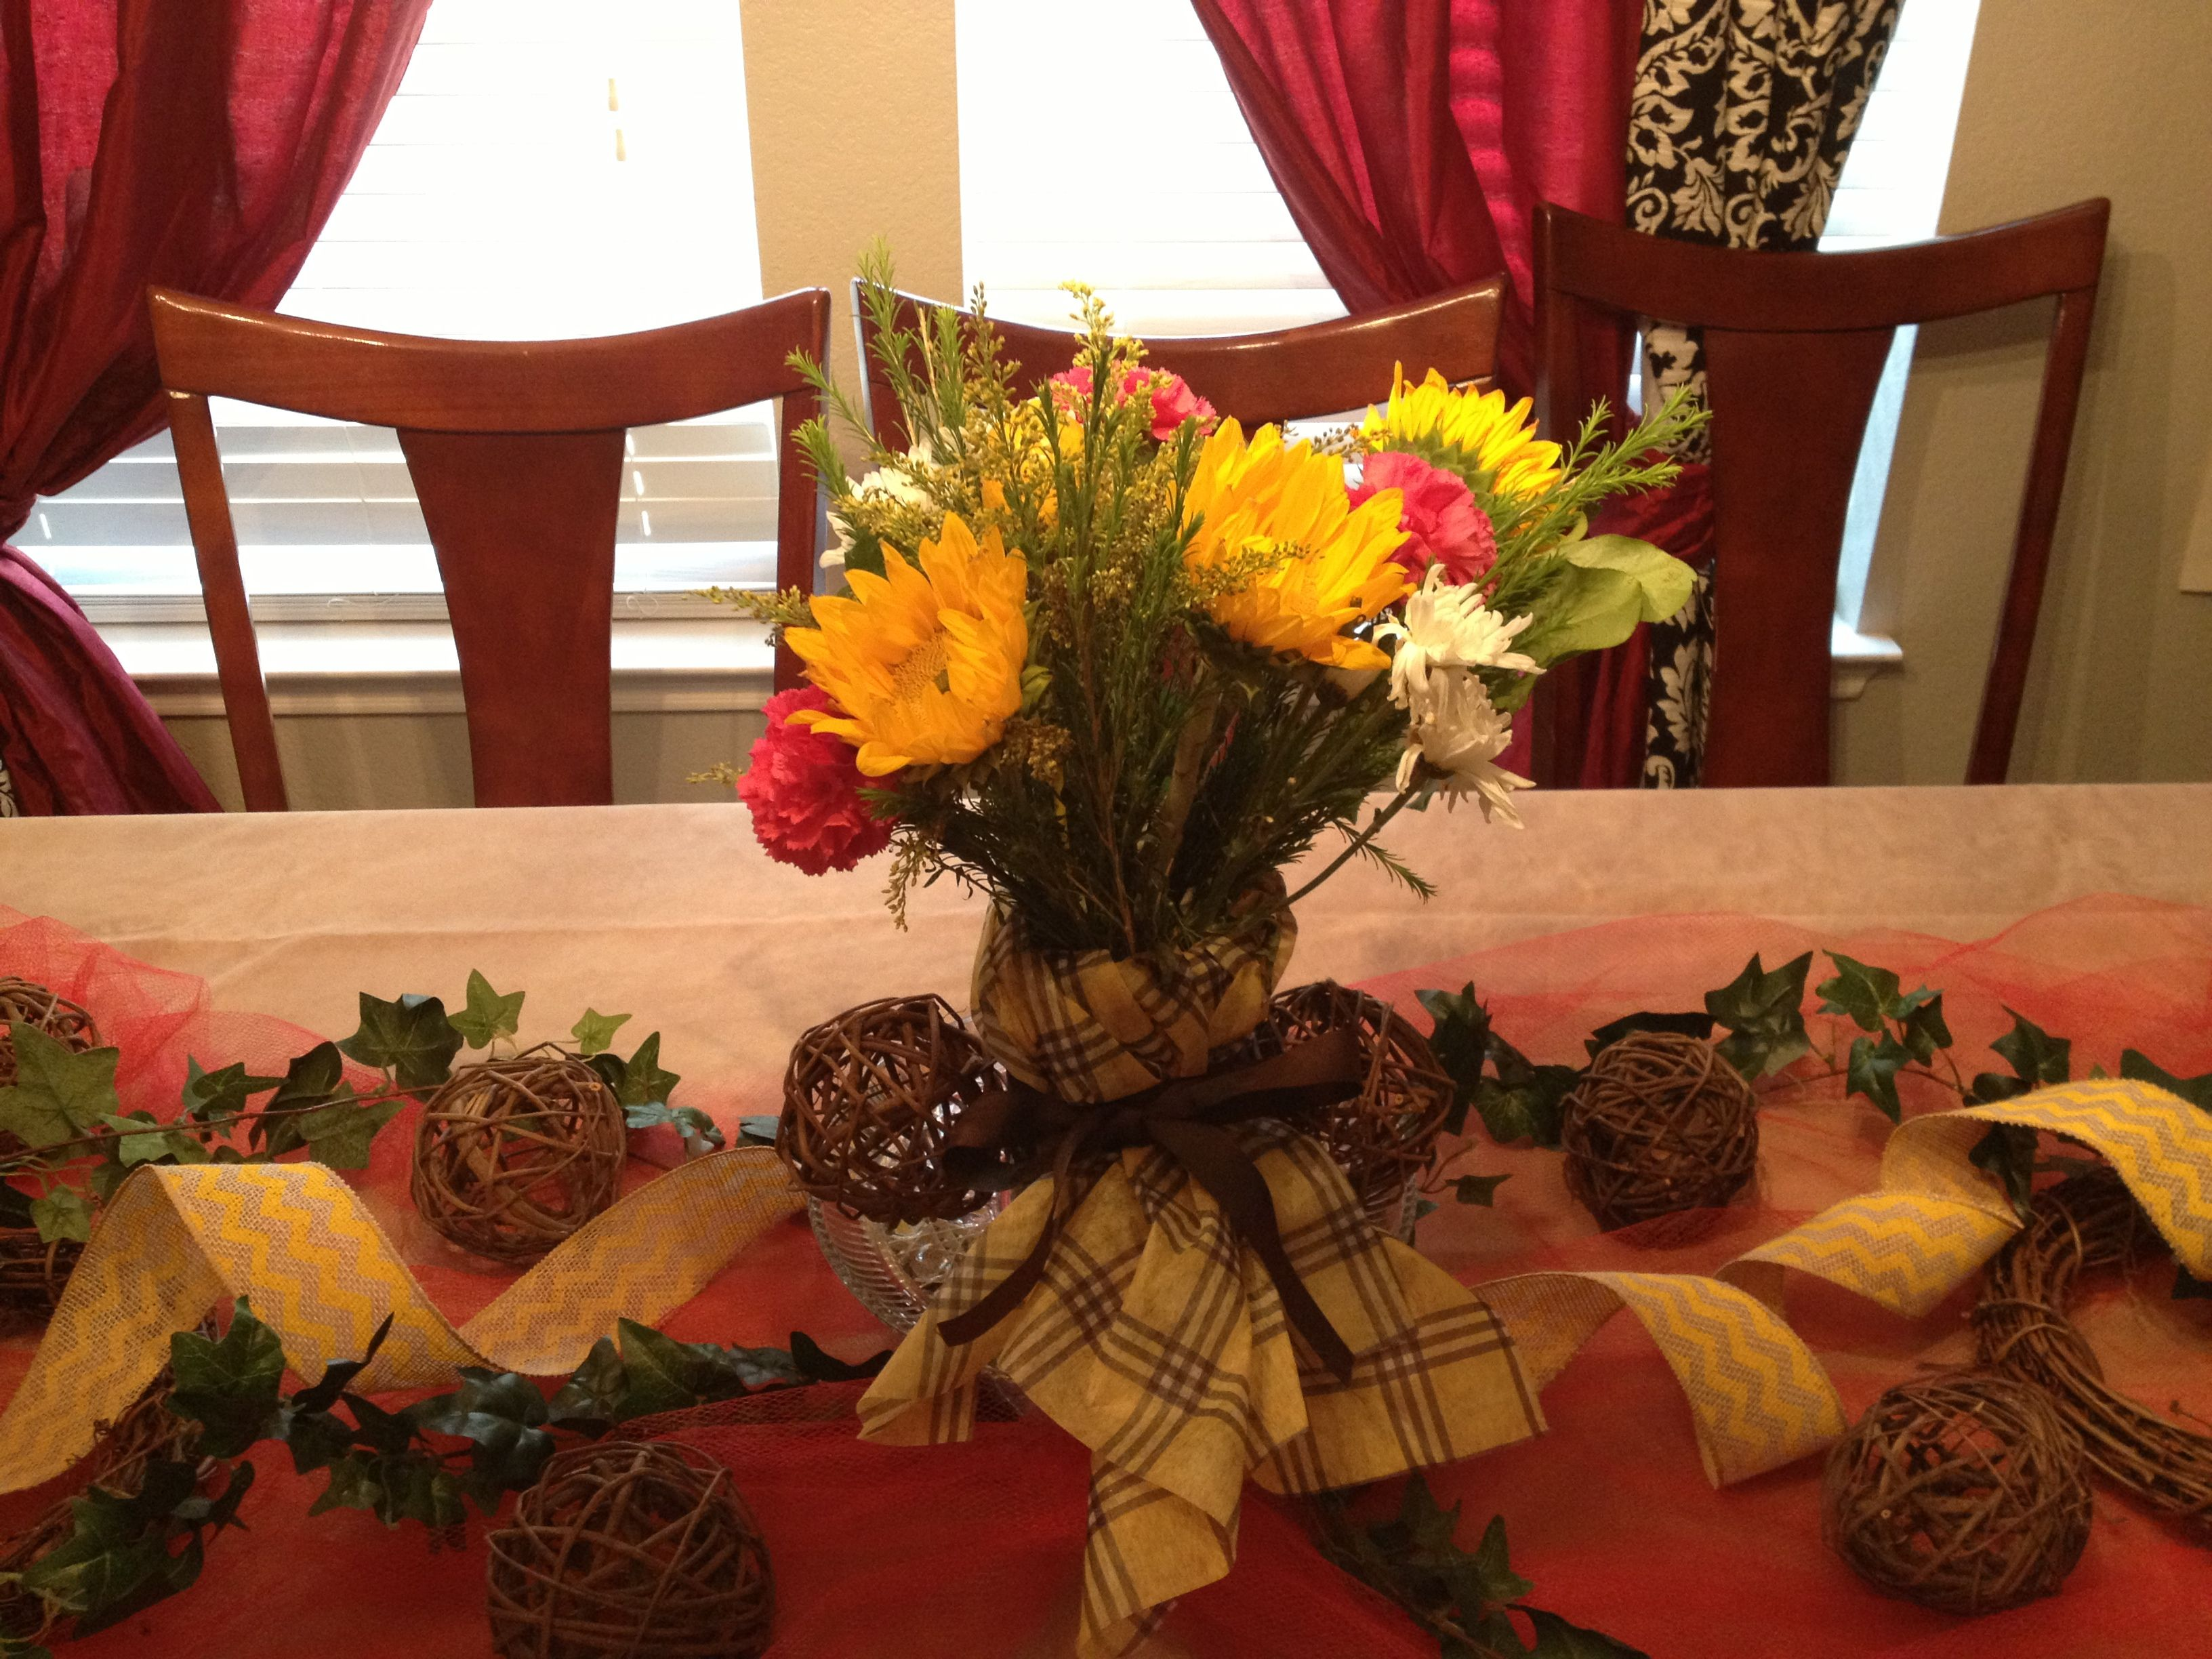 Here is another centerpiece I did for a party. Super simple, earthly and summery. :)